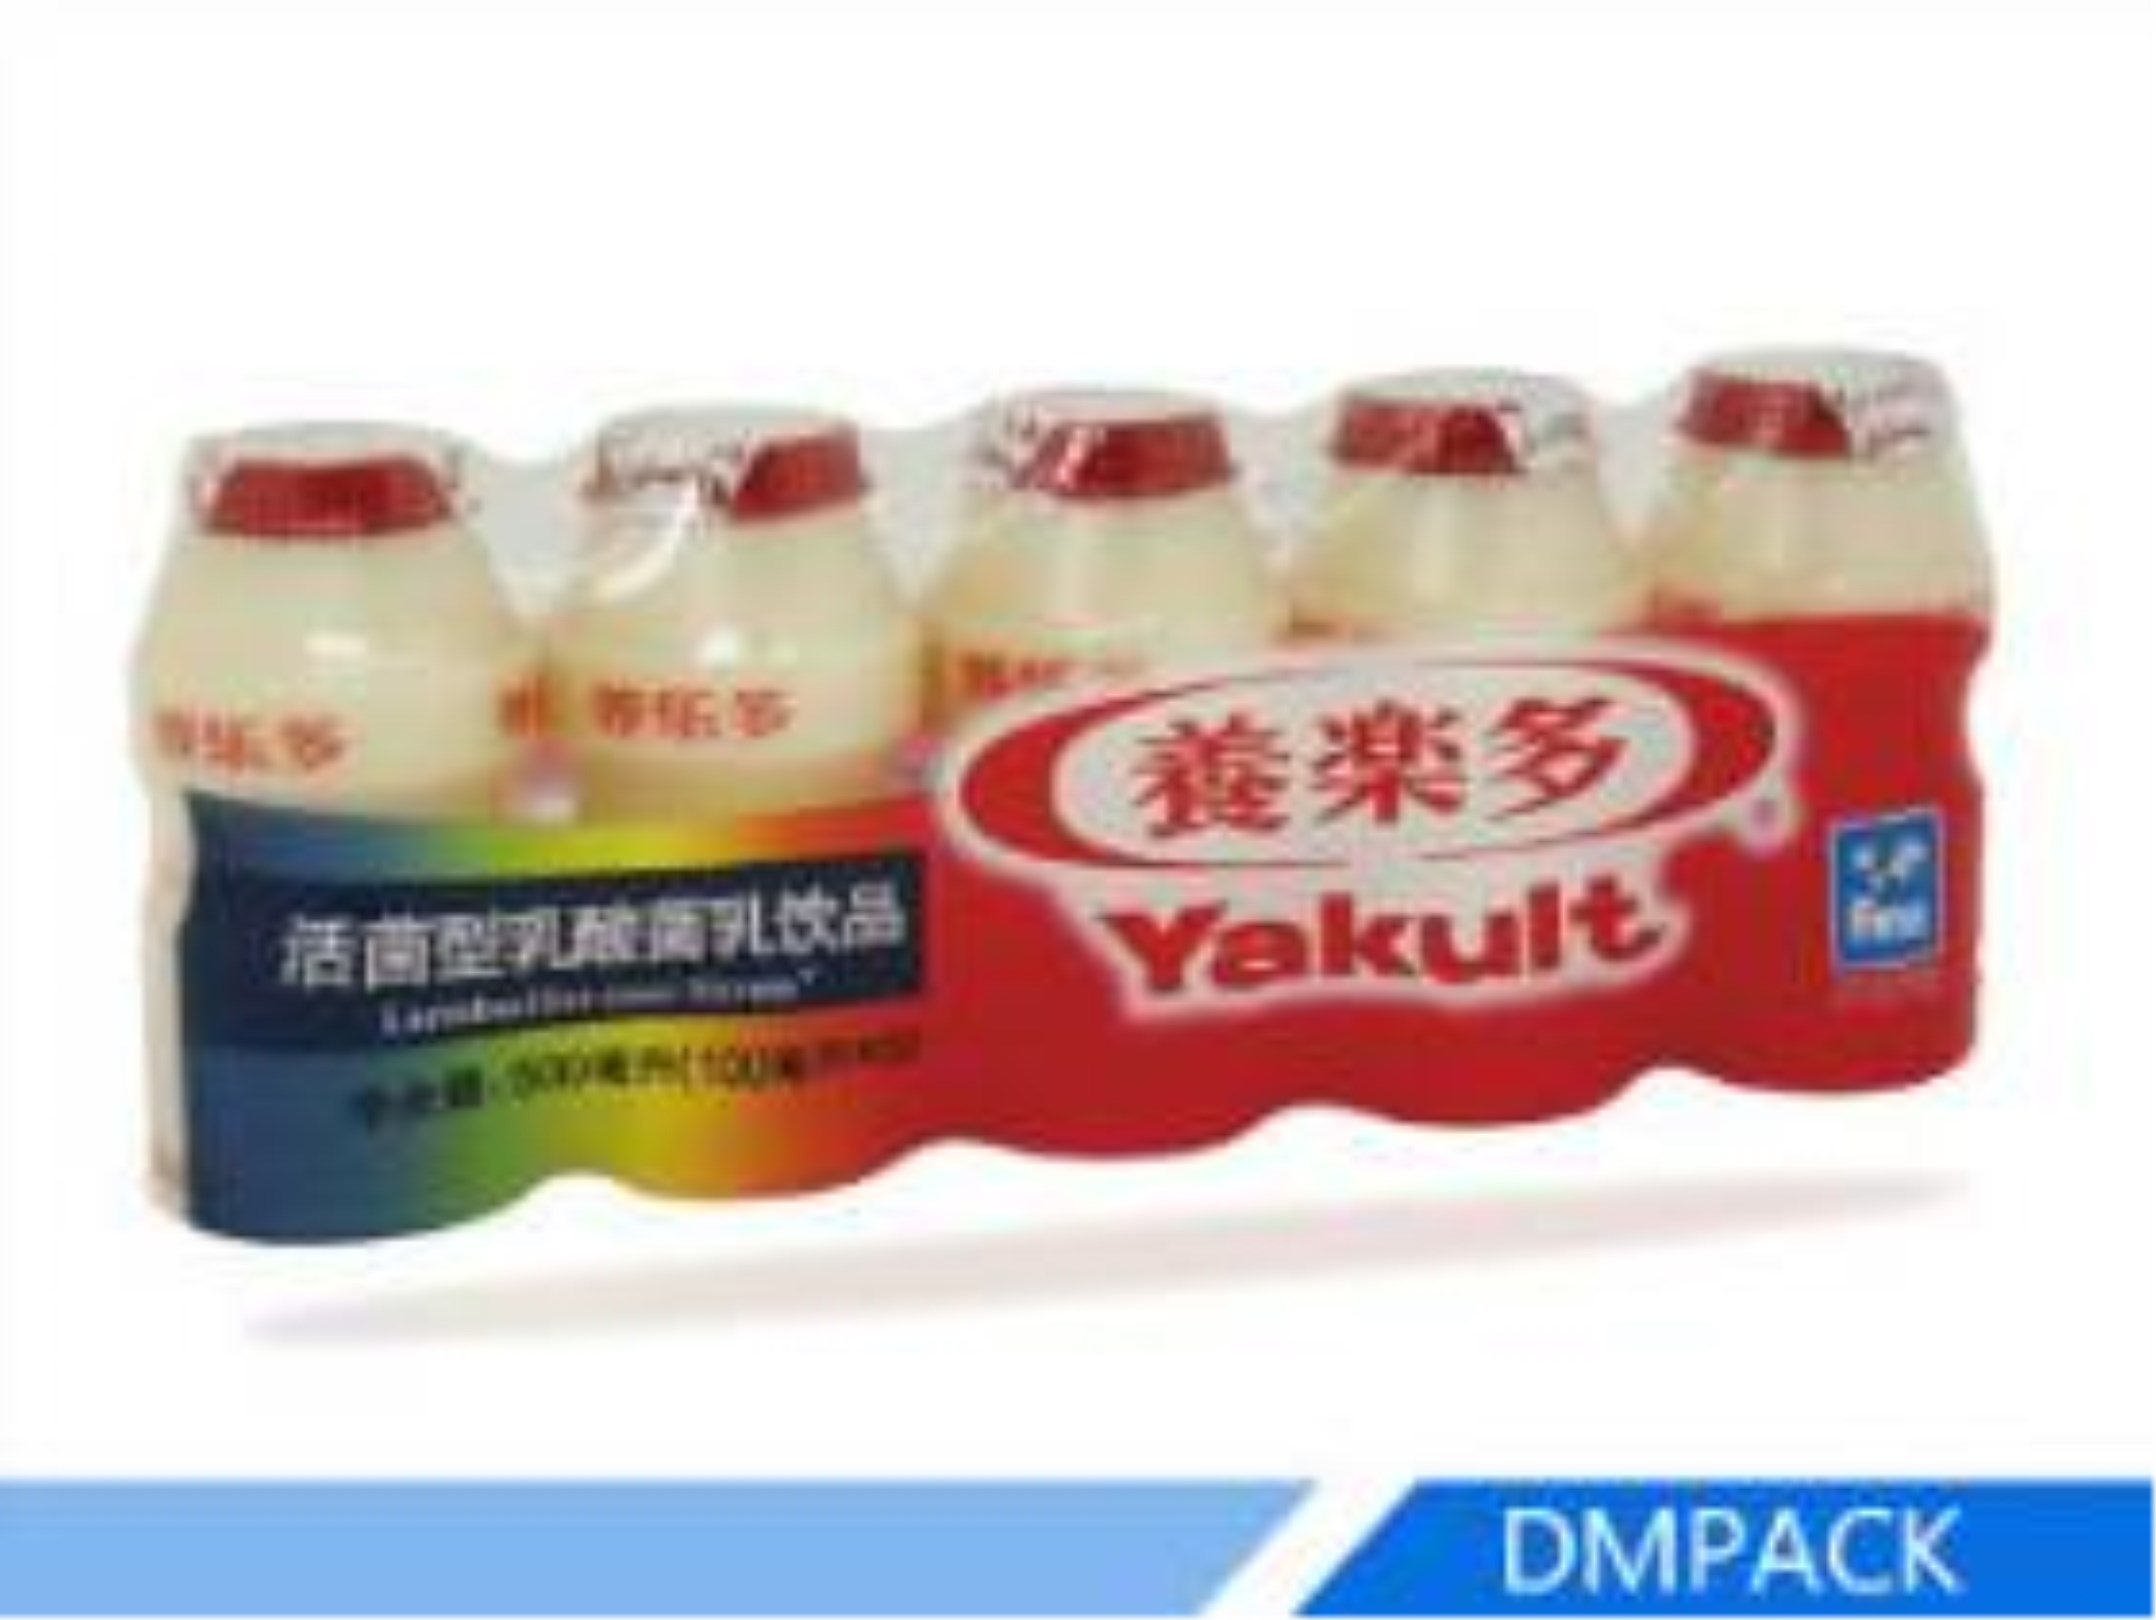 DMPACK07 SINGLE WOUND HIGH-SPEED PACKAGING FILM